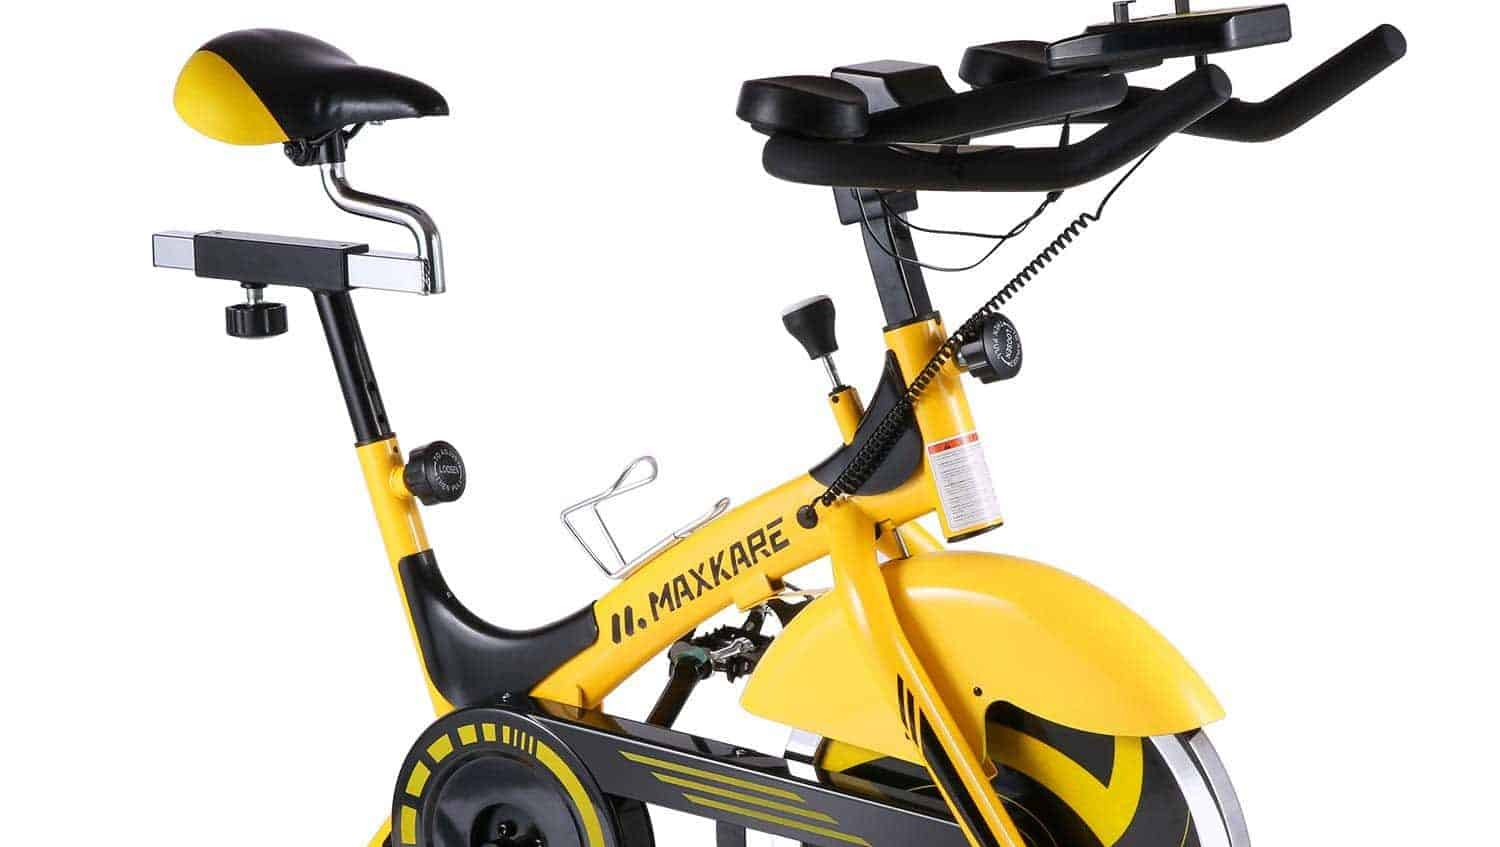 MaxKare Stationary Cycling Spin Bike Review